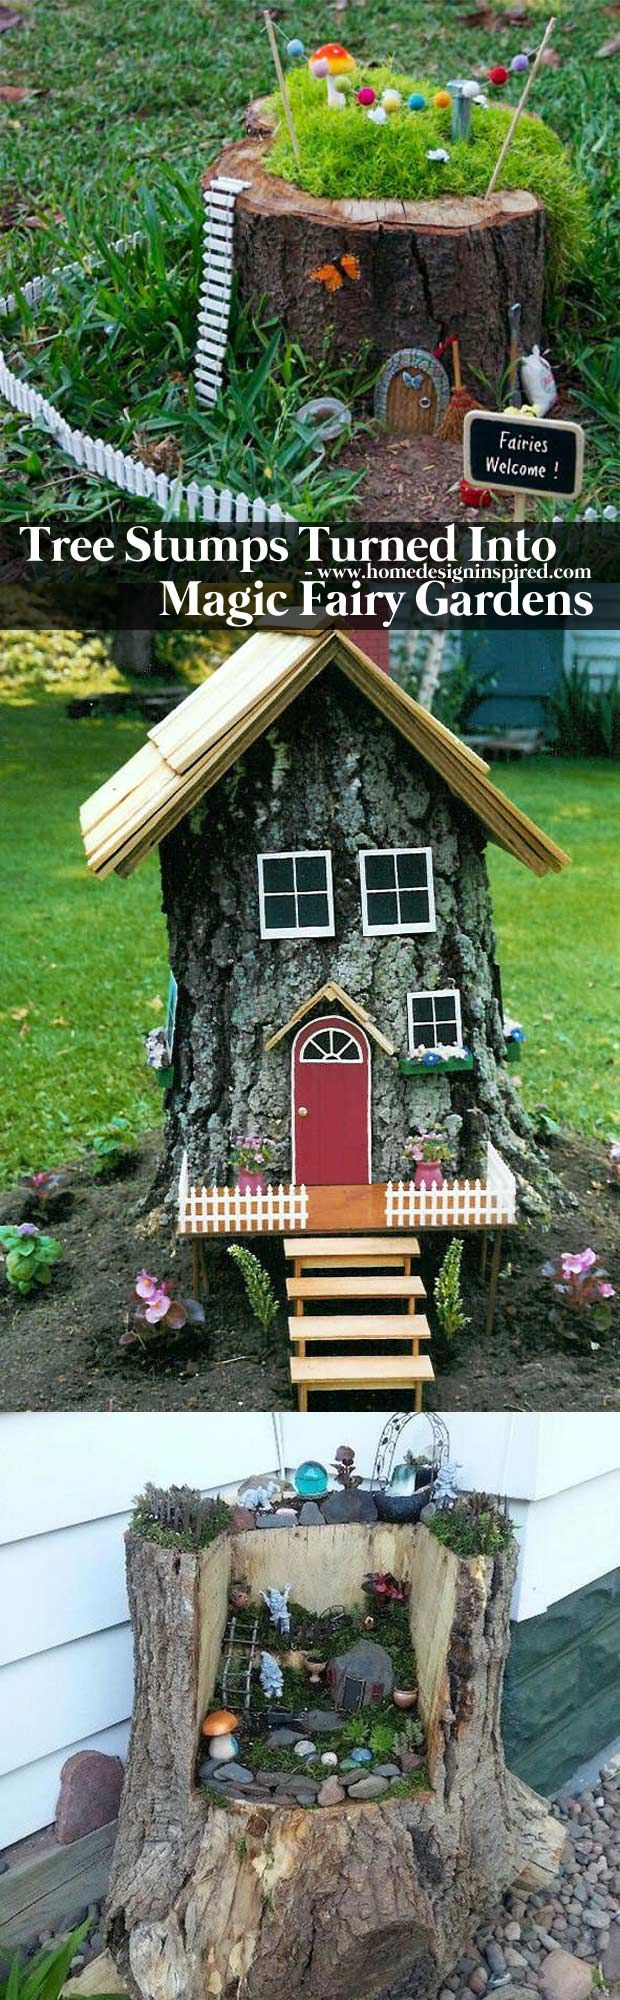 17 Stunning Fairy Gardens Created by Recycled Things #gartenrecycling